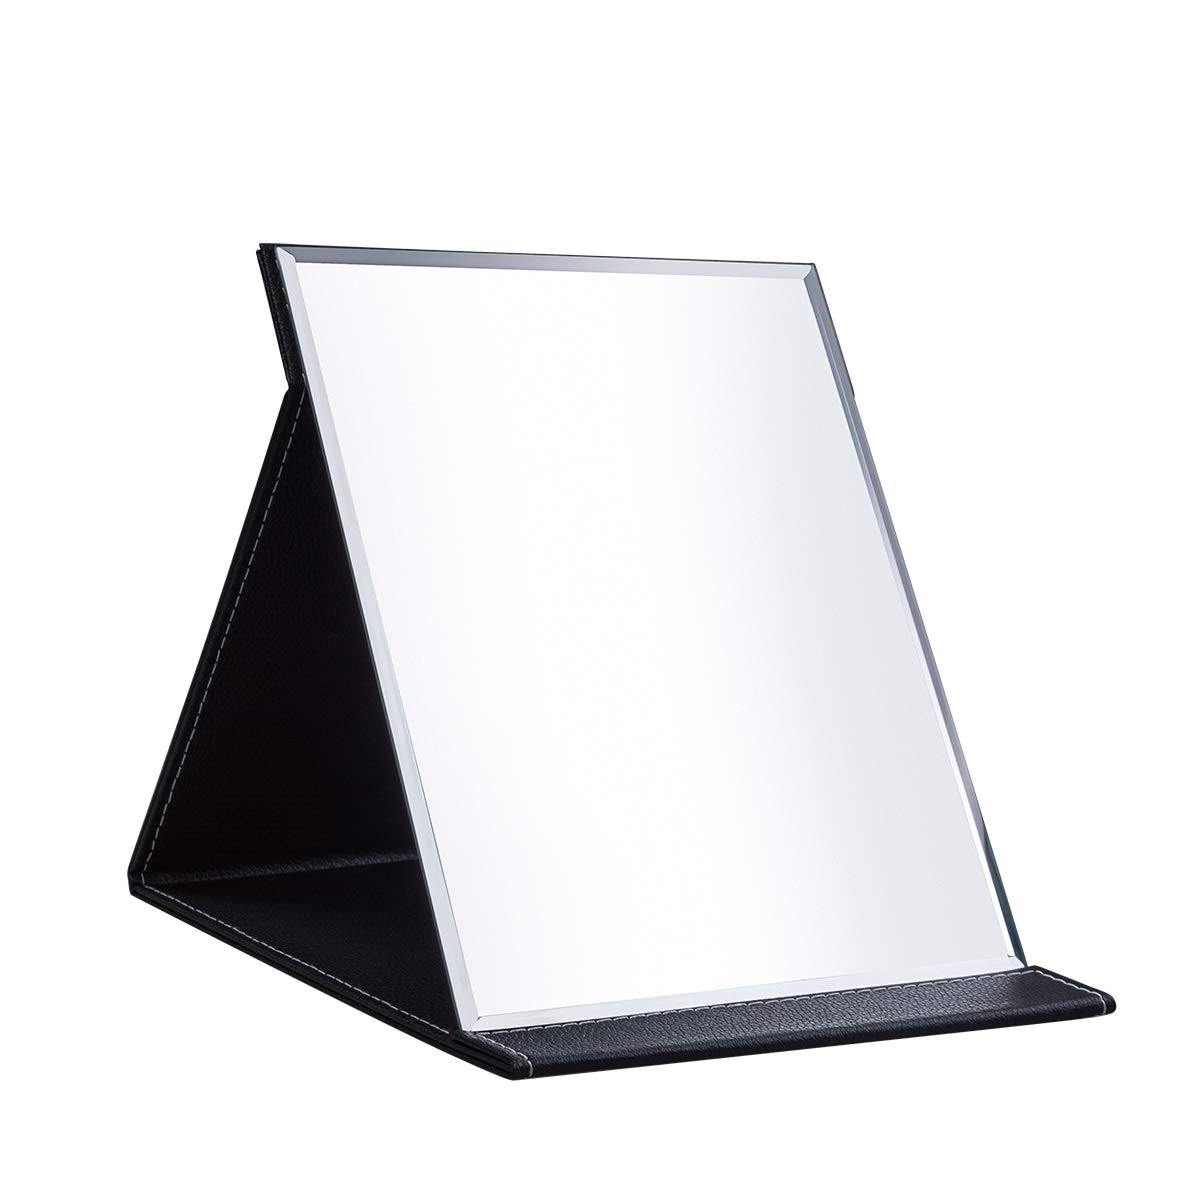 Protable PU Leather Mirror Folding Desktop Makeup Mirror with Adjustable Stand for Personal Use,Travelling (L, Black)